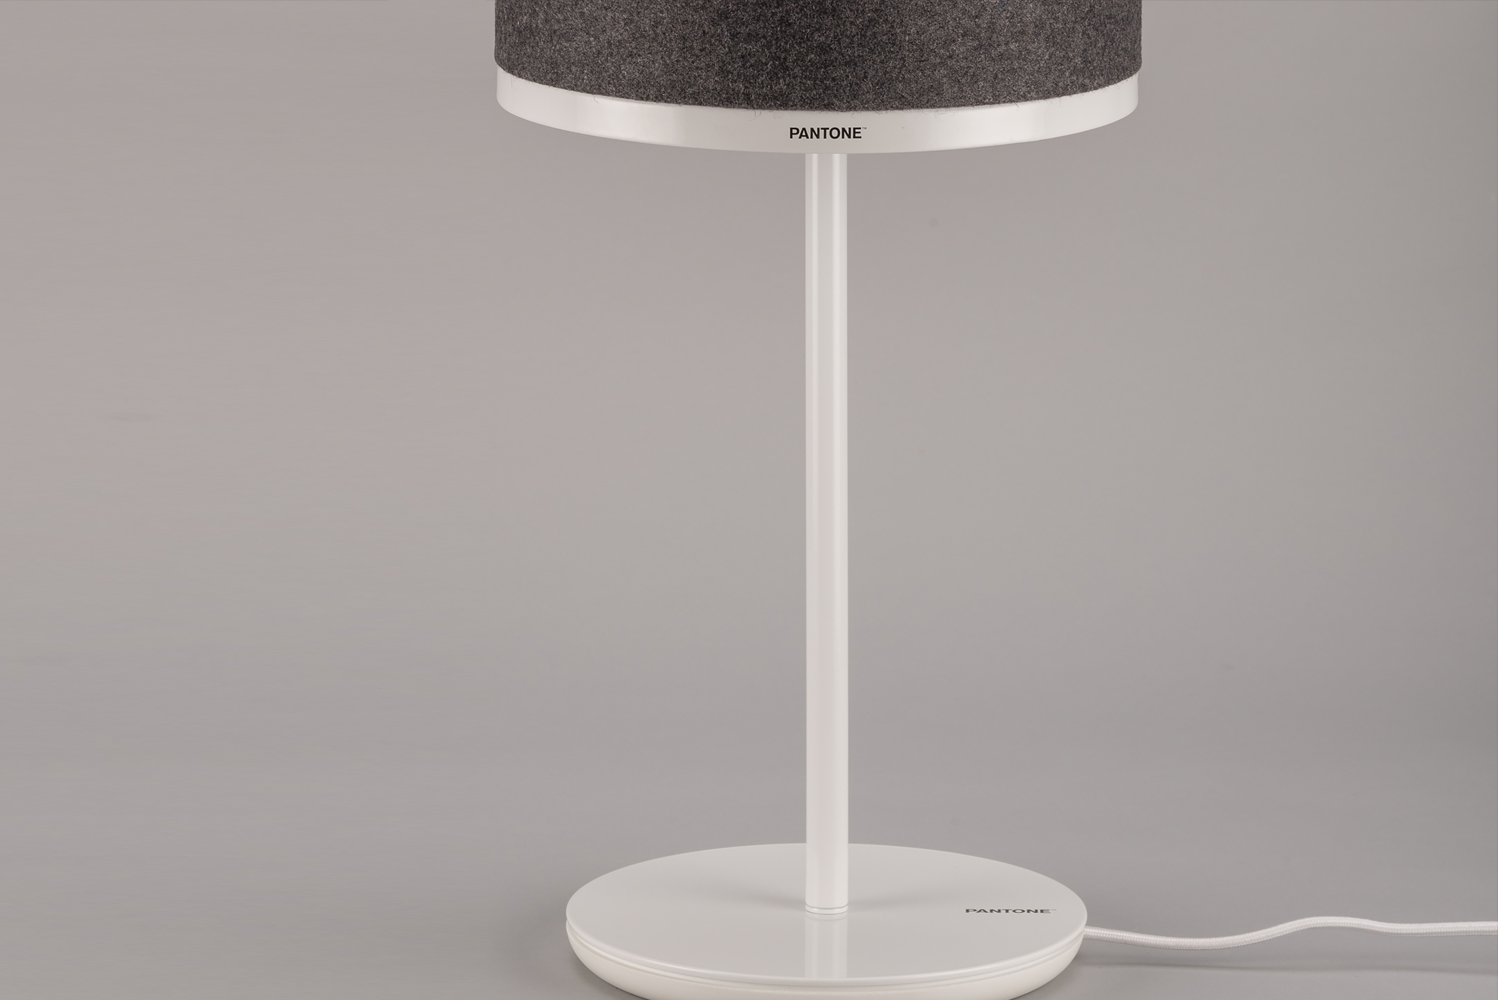 The Capella table lamp has a specially designed base that appears lightweight